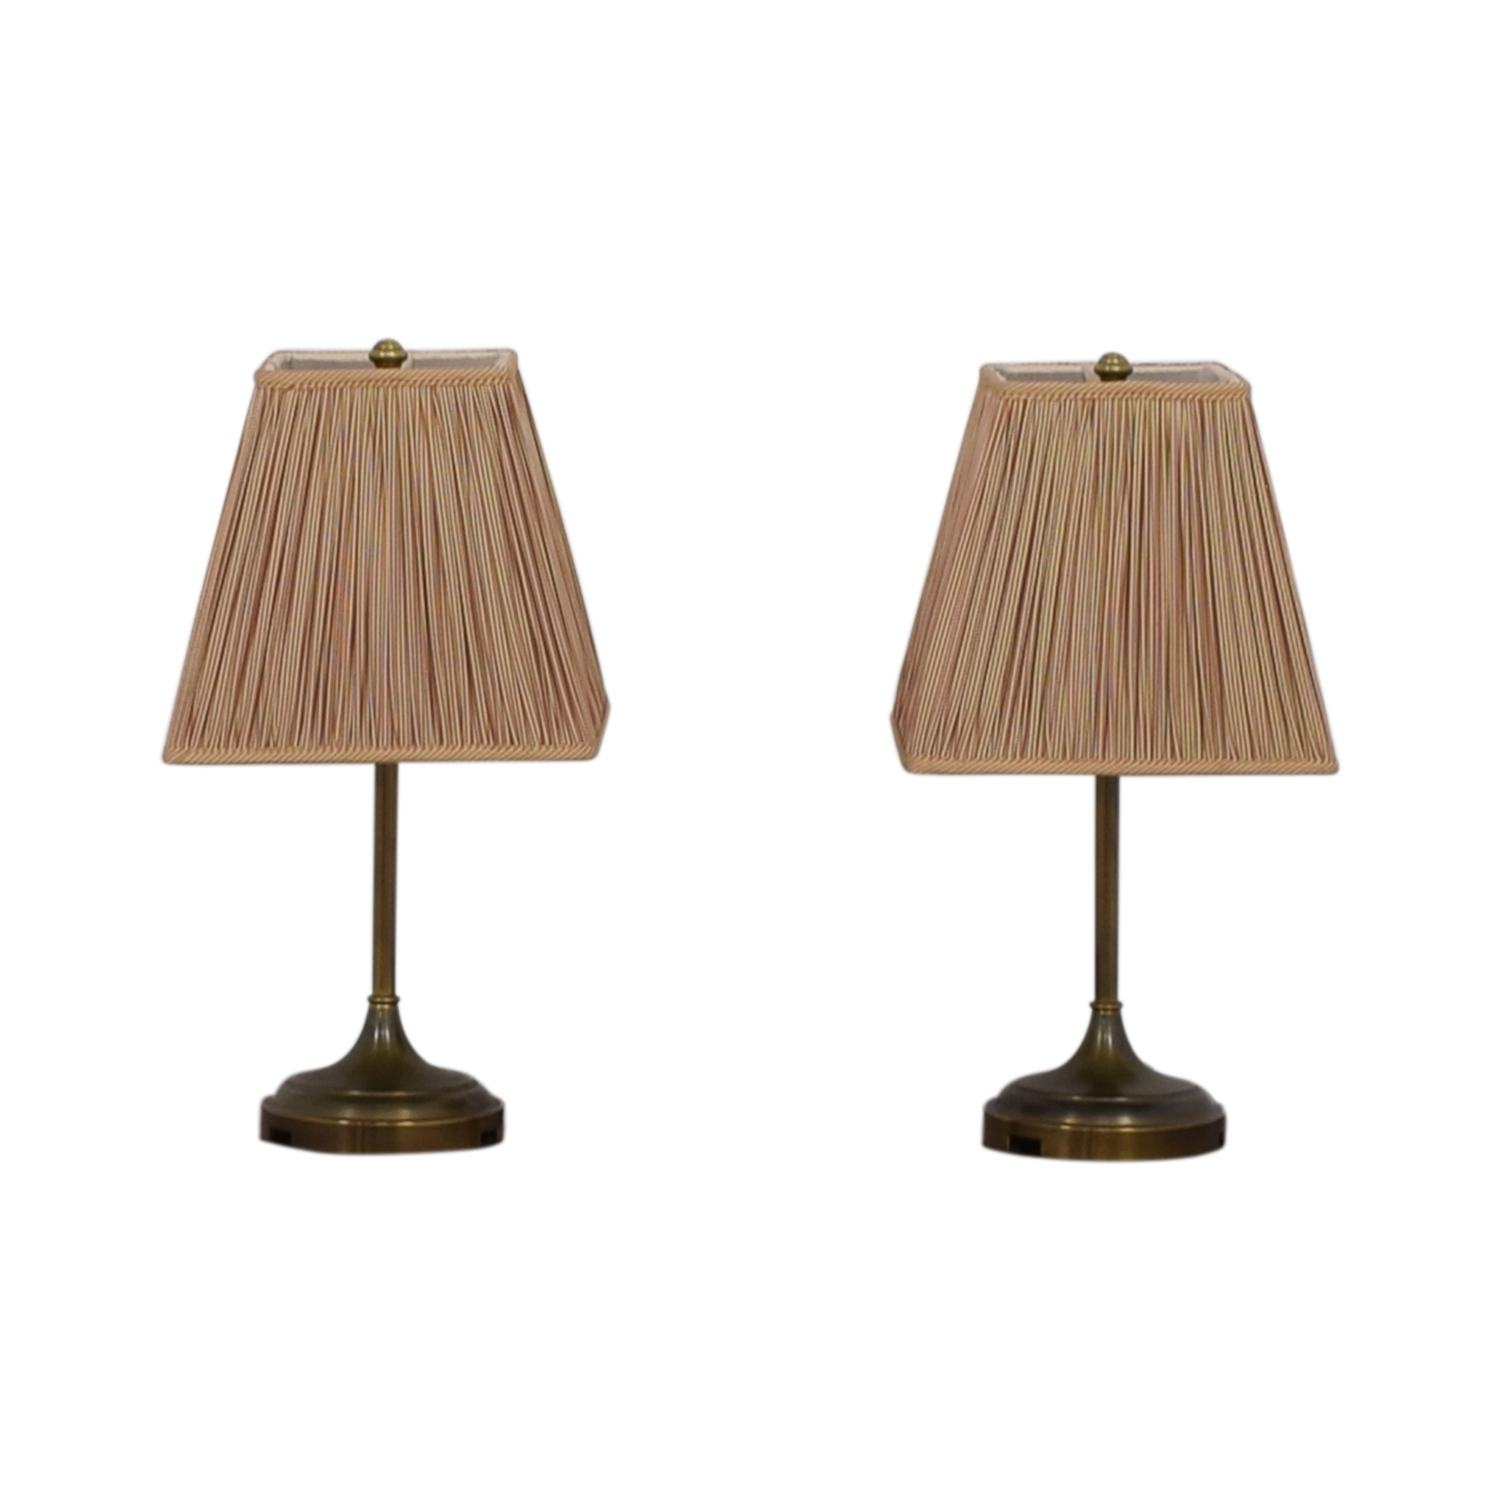 buy Pottery Barn Pottery Barn Striped Shade Brass Lamps online